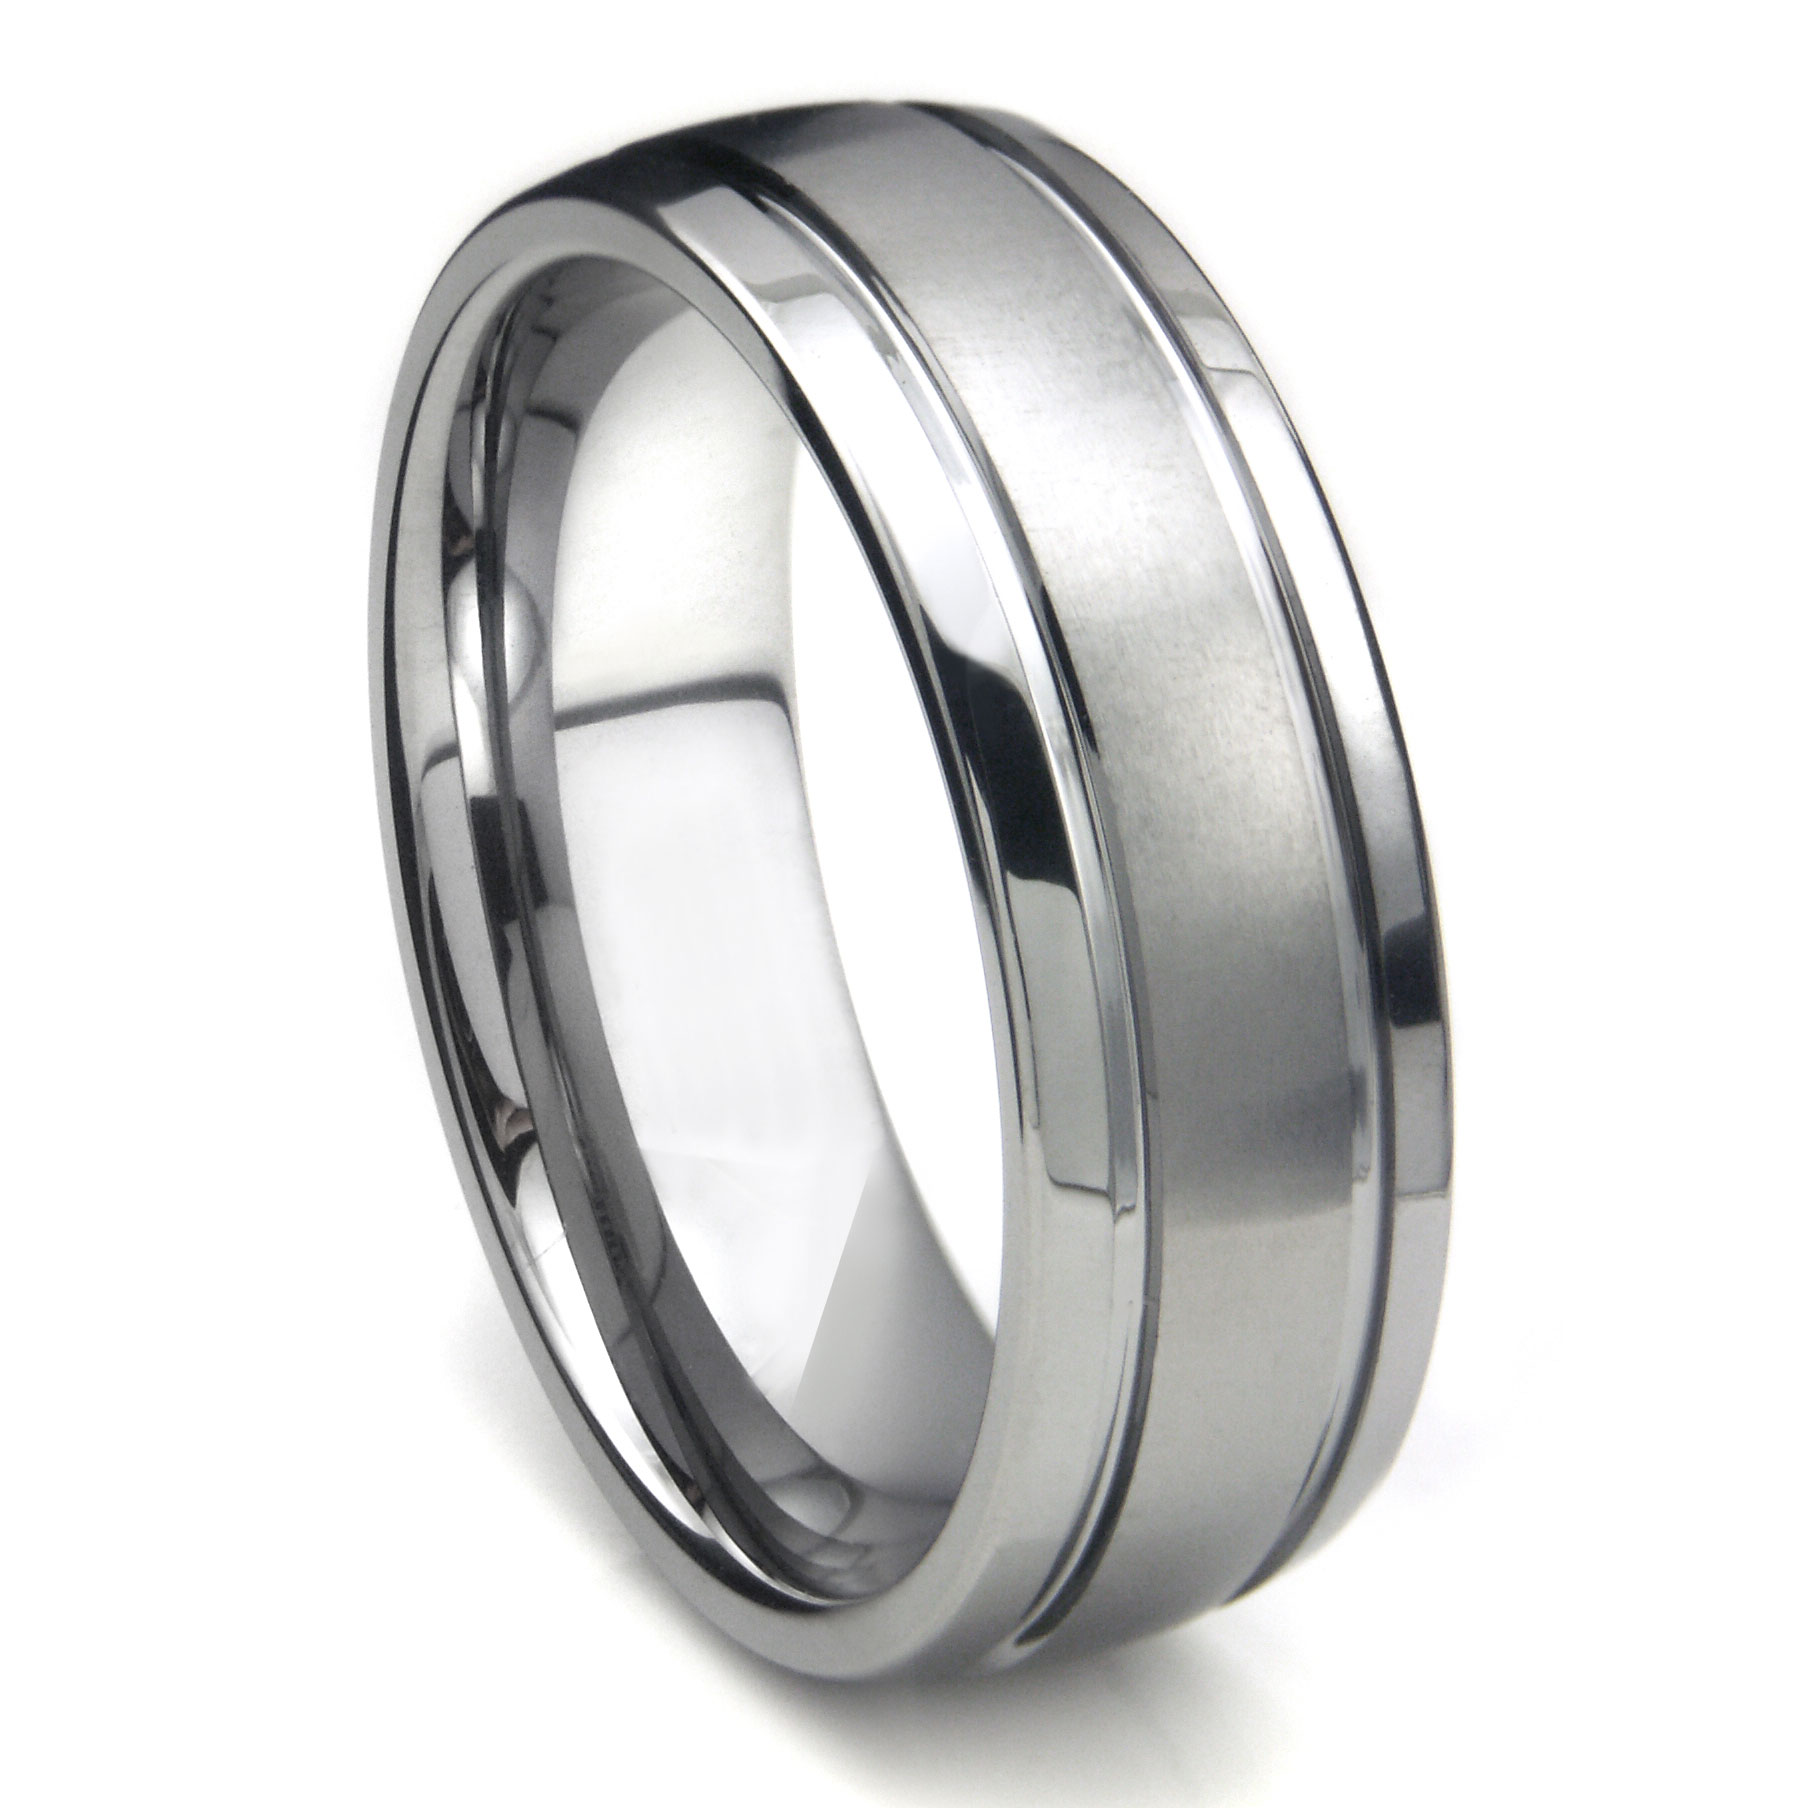 Tungsten Carbide Newport Double Groove Dome Wedding Band Ring P double wedding band Loading zoom